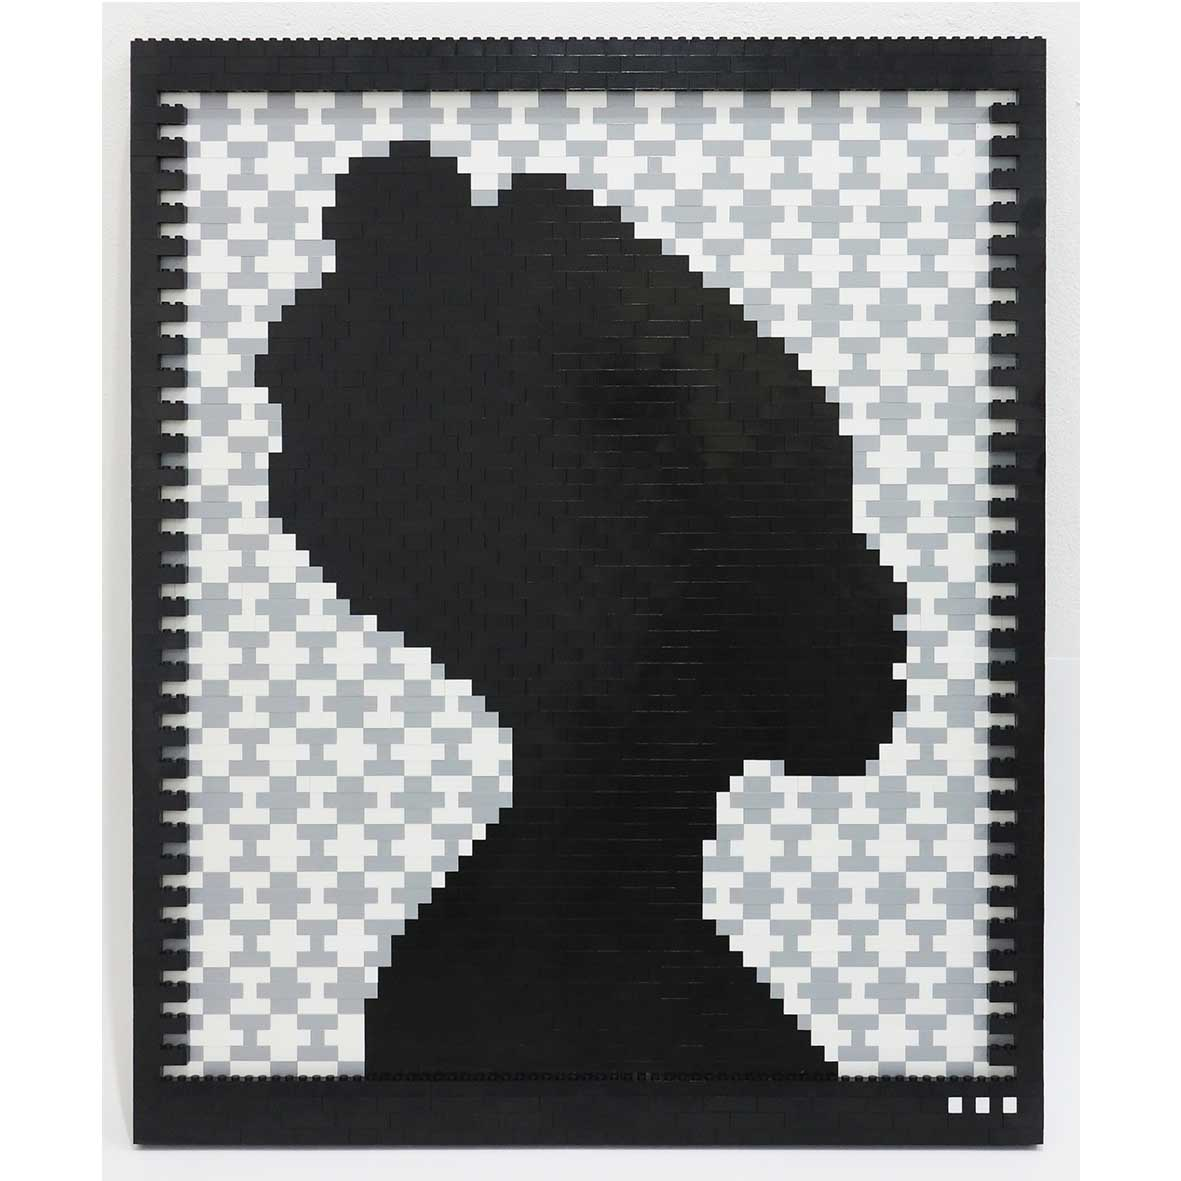 Faatimah Mohamed-Luke Reflections of a Queen II Ashanti – Grey, 2018 2089 ABS plastic building blocks adhered to Aluminium 65 x 53.5 cm